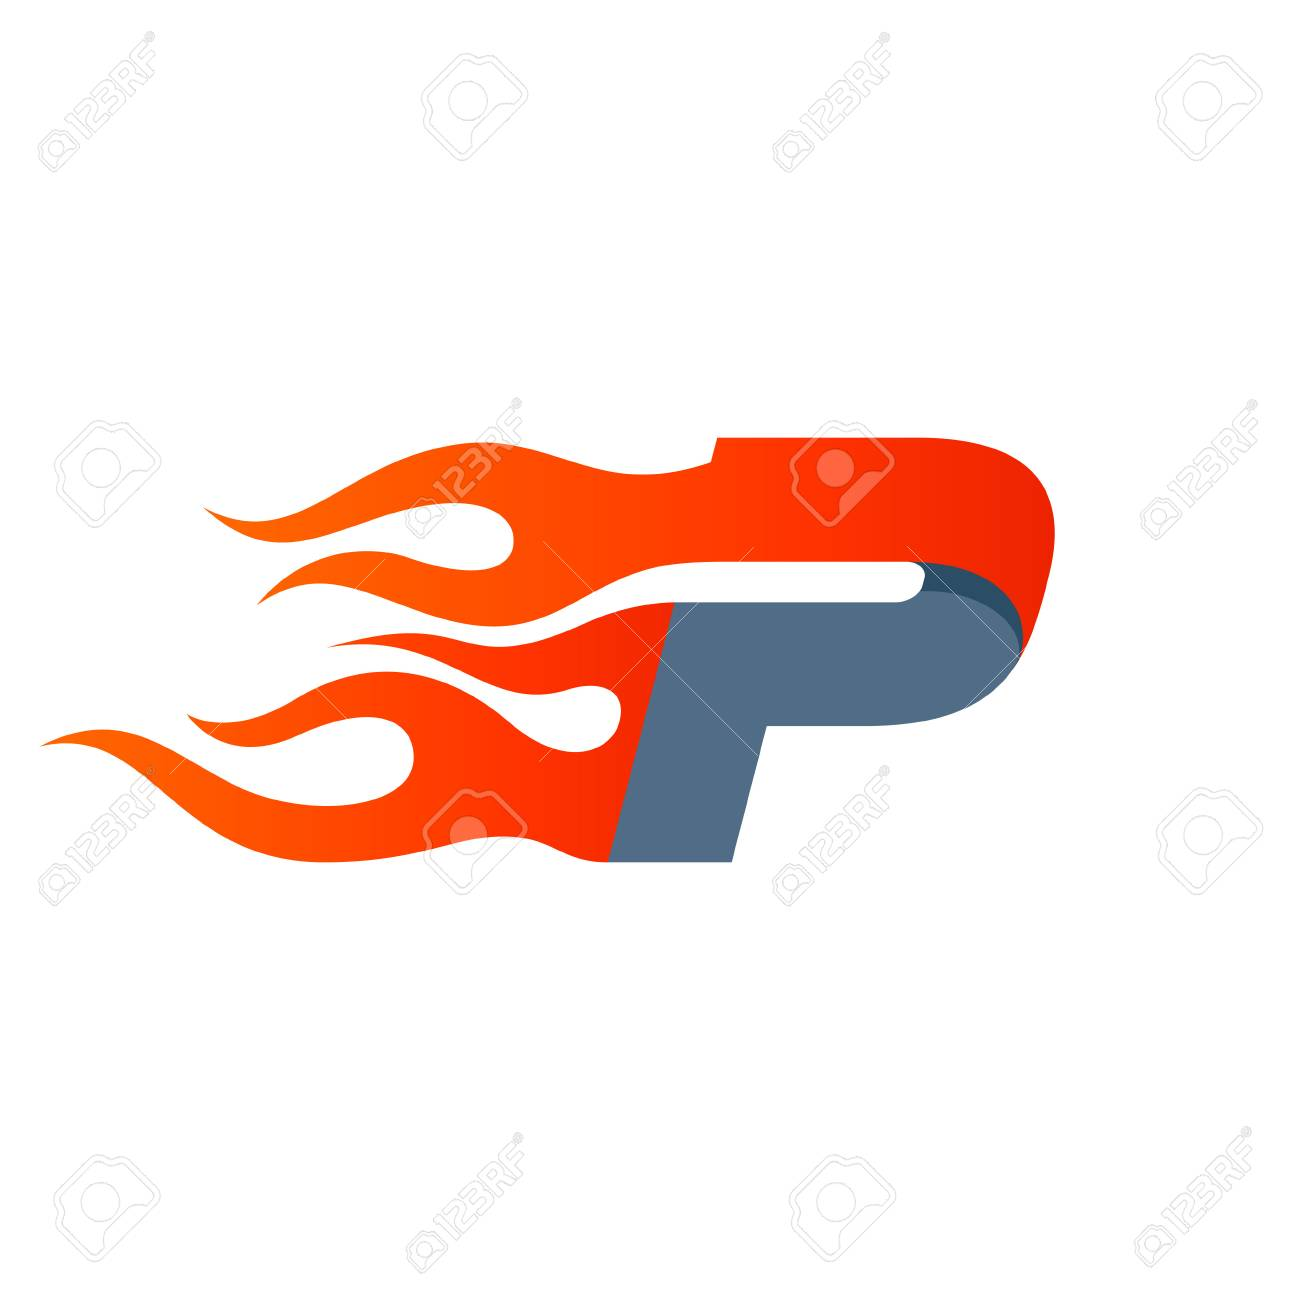 Letter P Design Template Fast Fire Speed Vector Unusual Letter